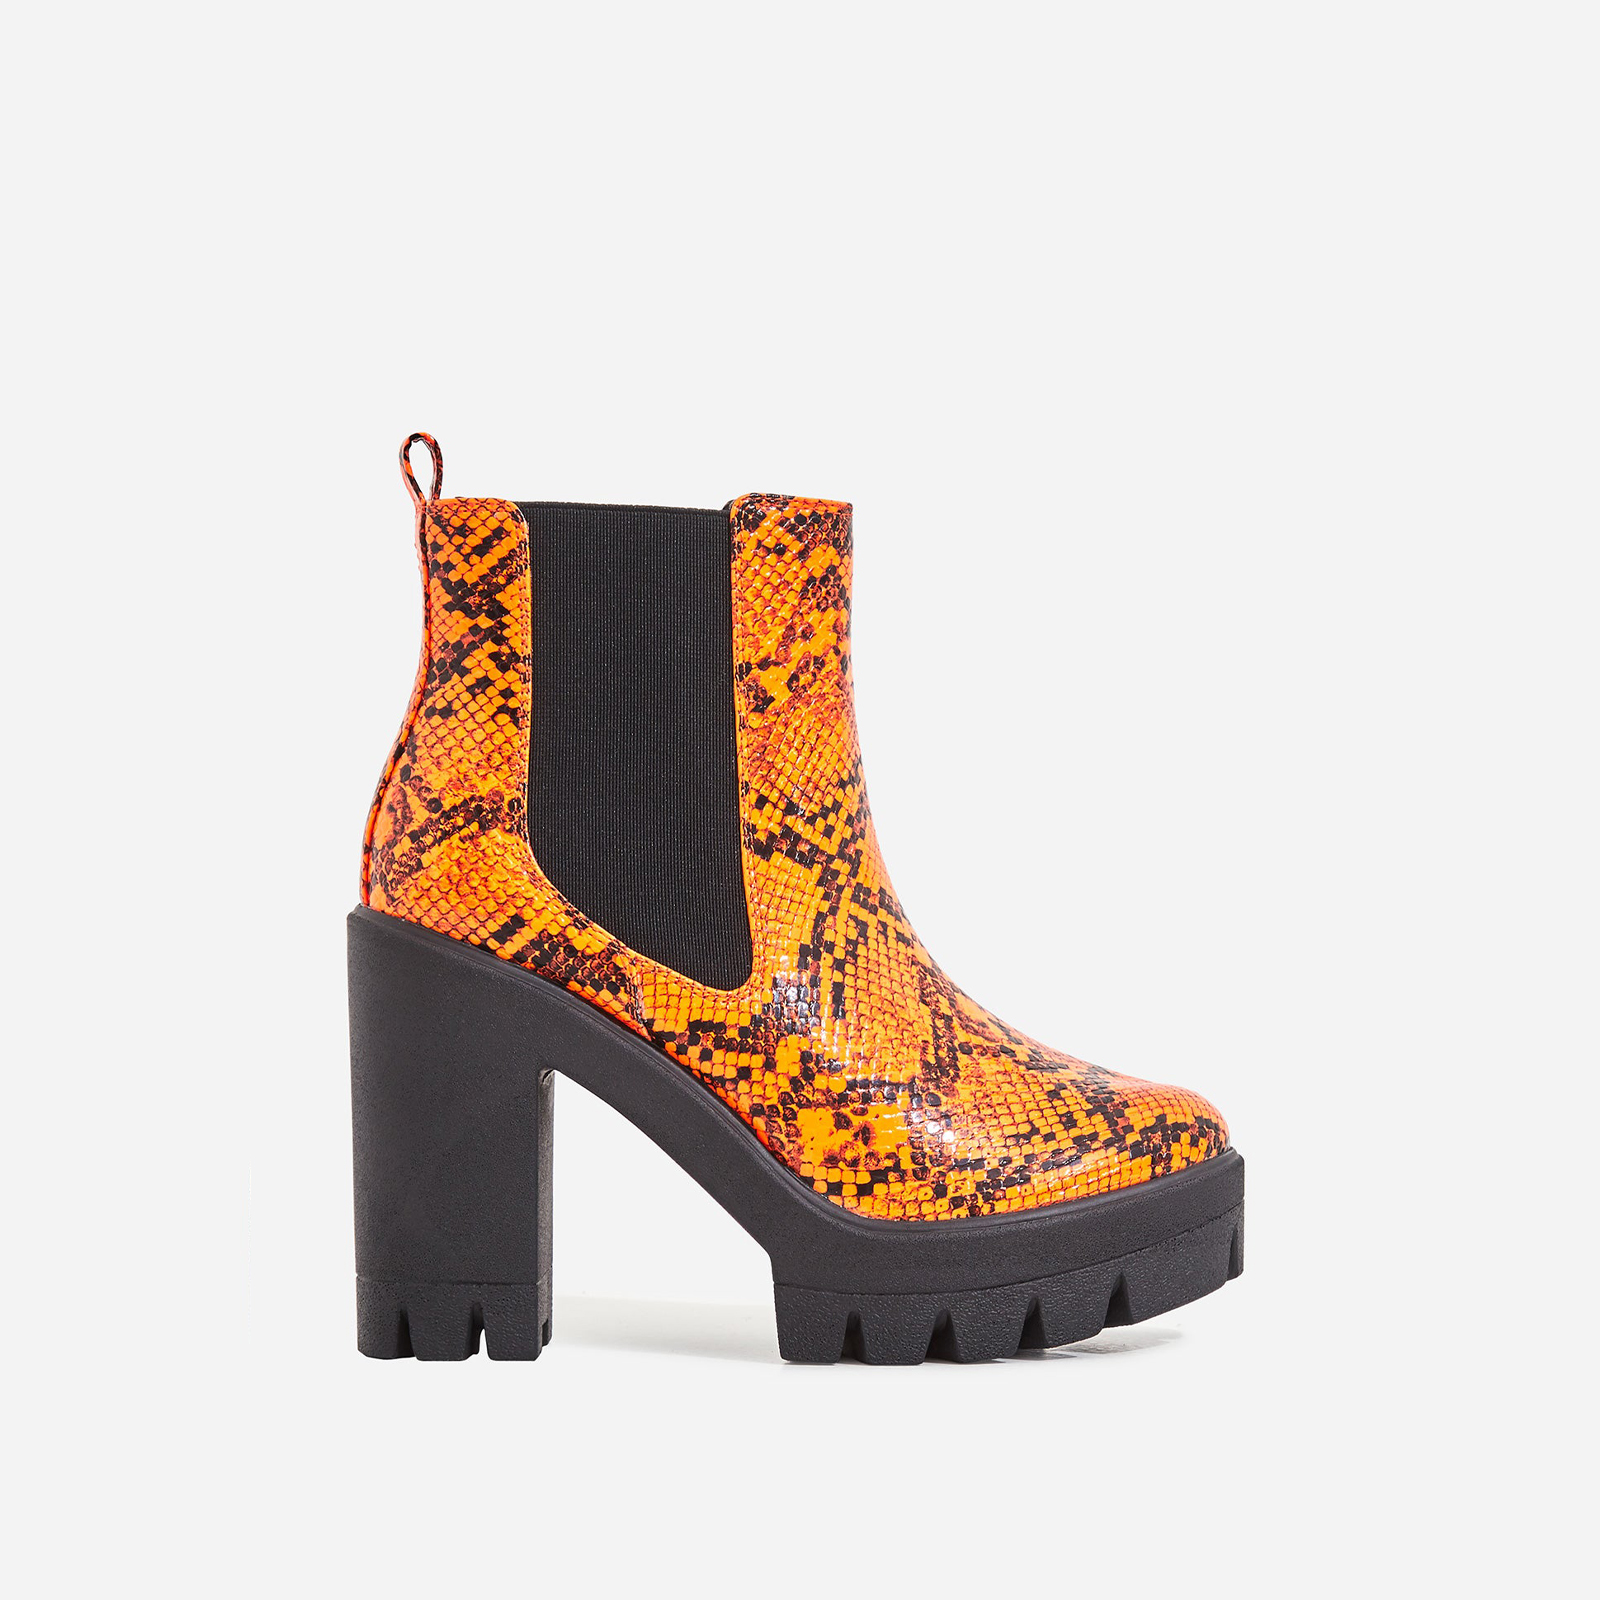 Liya Chunky Sole Ankle Chelsea Boot In Neon Orange Snake Print Patent